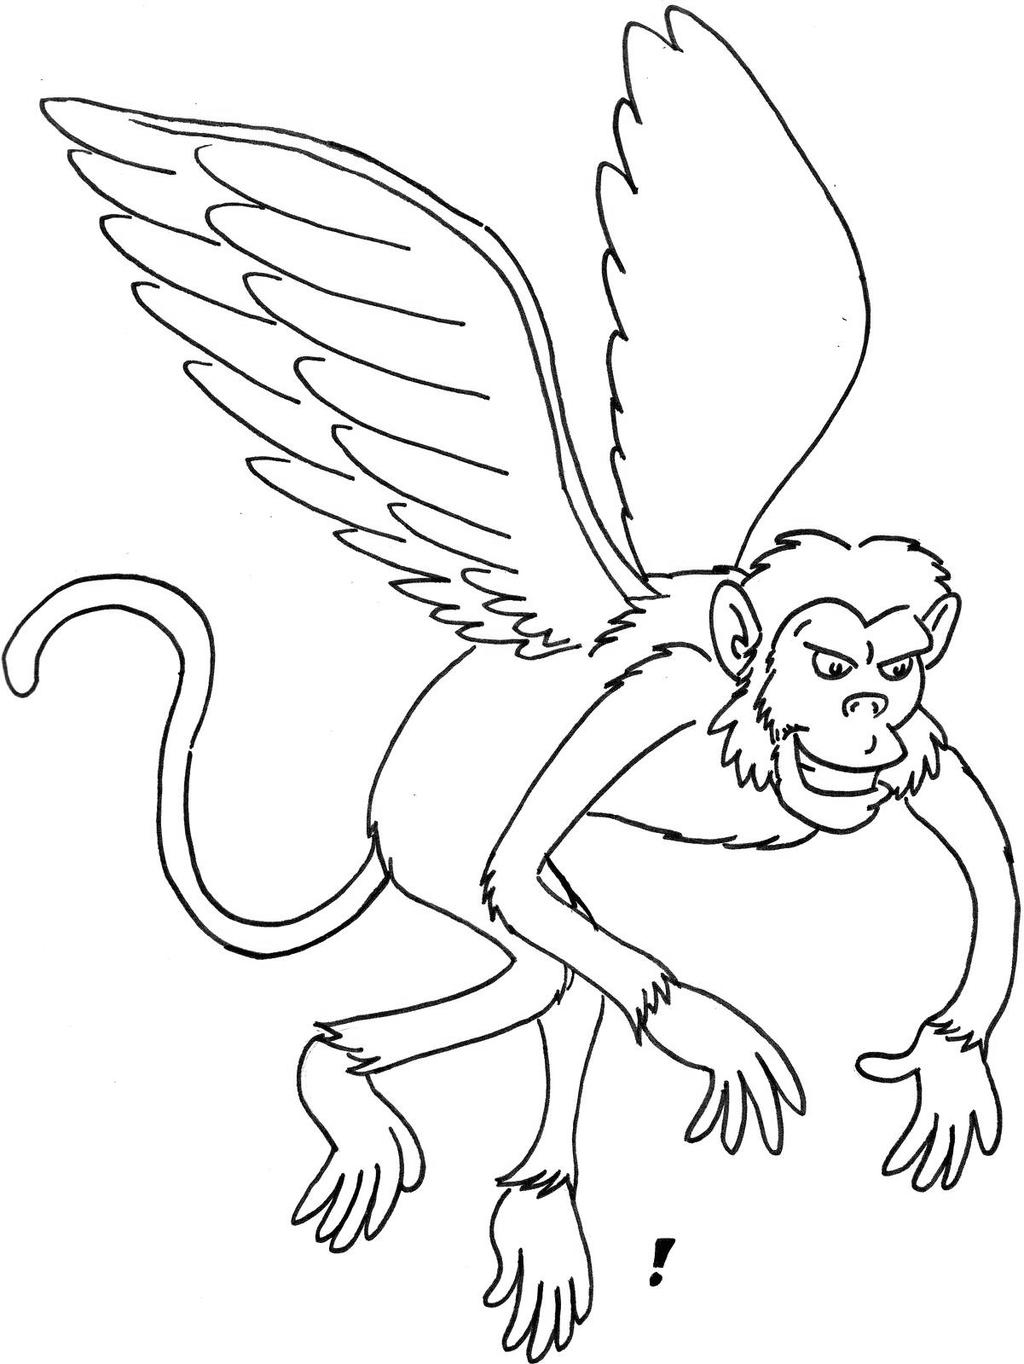 Free Wizard Of Oz Coloring Pages Flying Monkey printable